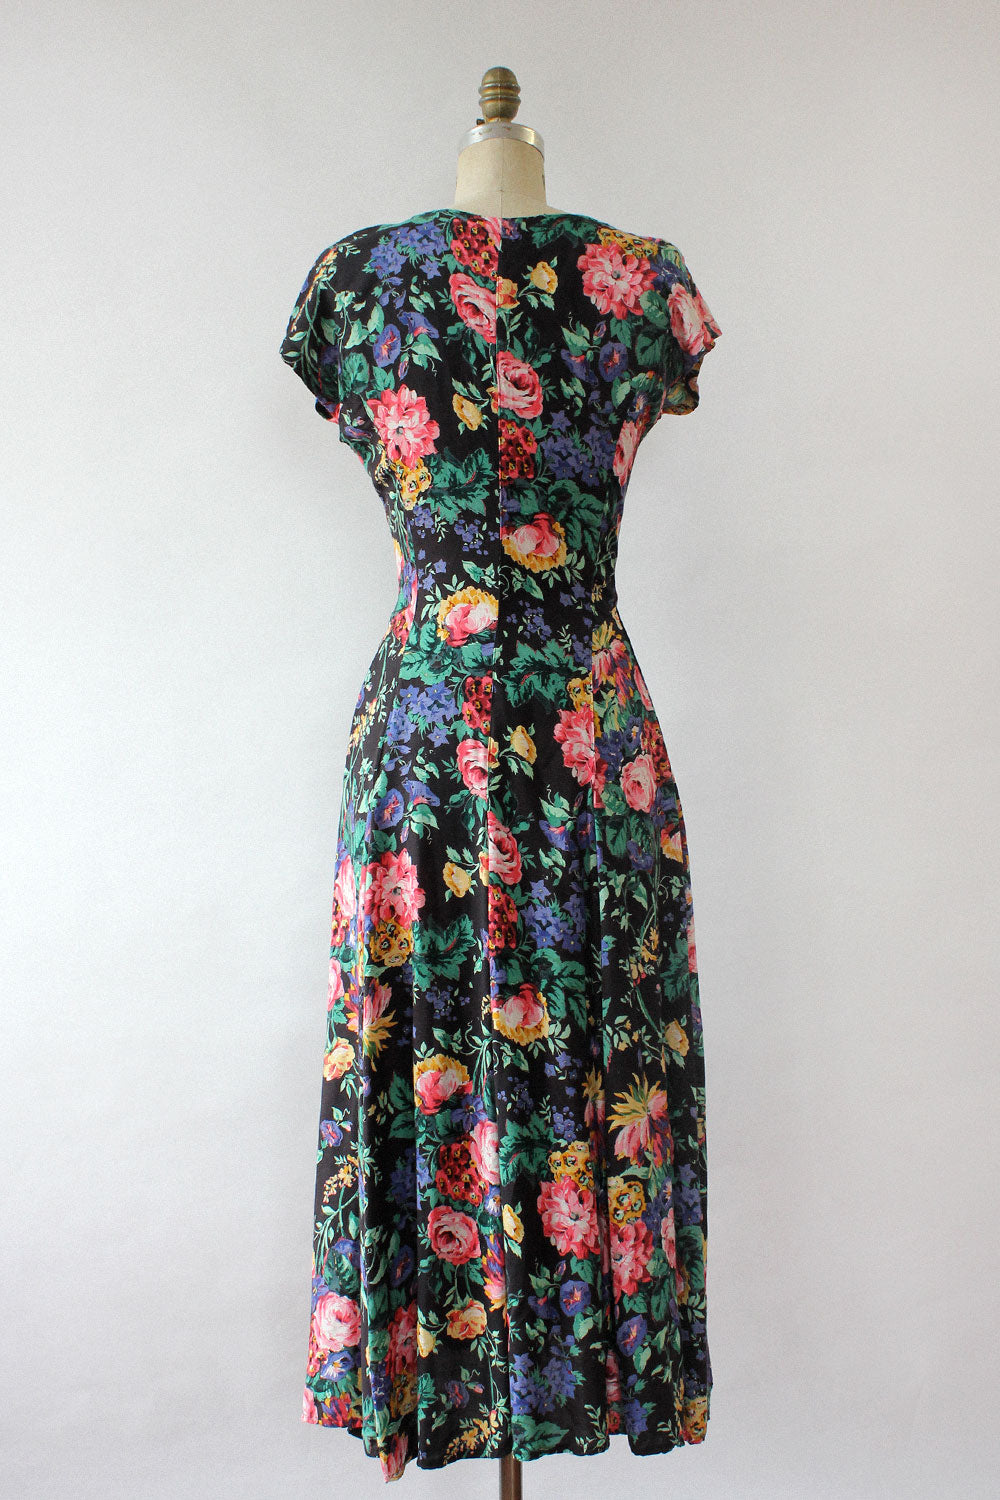 Starina Moody Floral Dress S/M